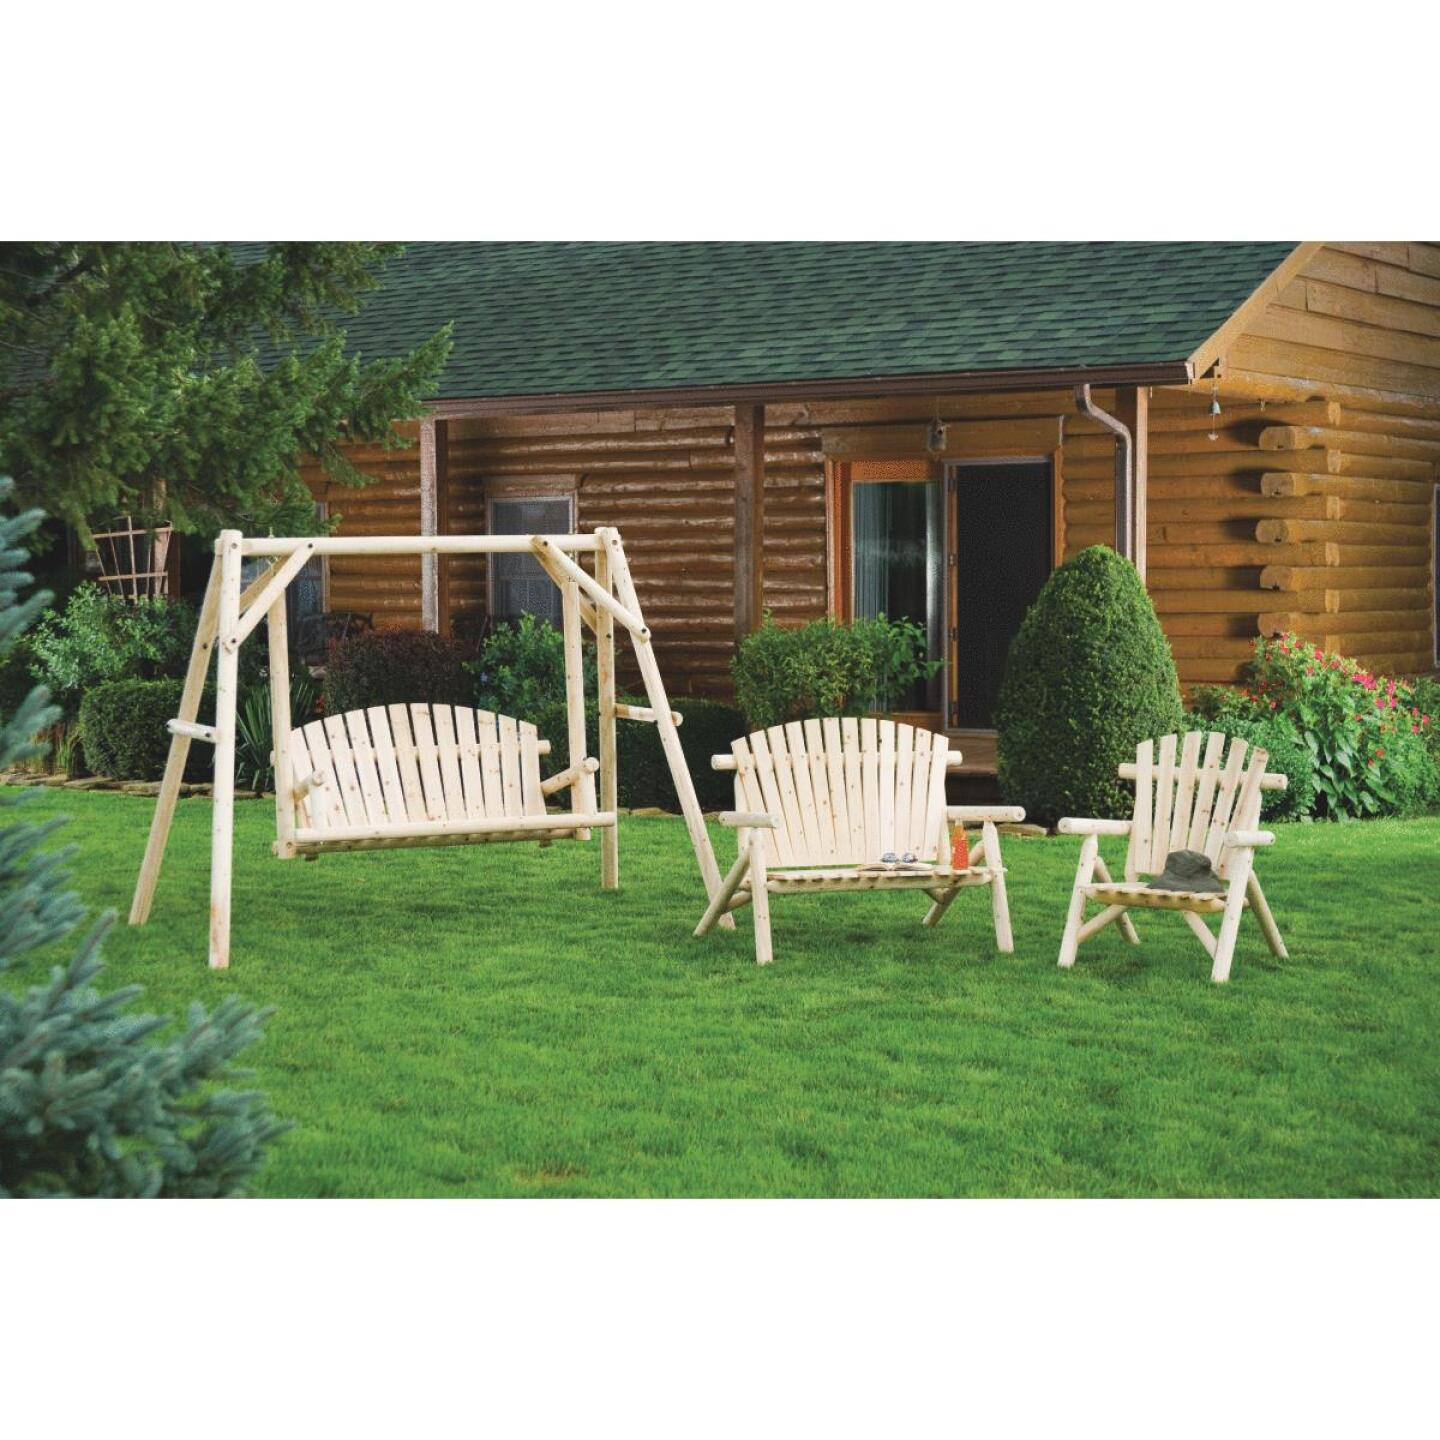 Jack Post North Woods 2-Person 71 In. W. x 67 In. H. x 55 In. D. Natural Log Patio Swing with Canopy Image 2